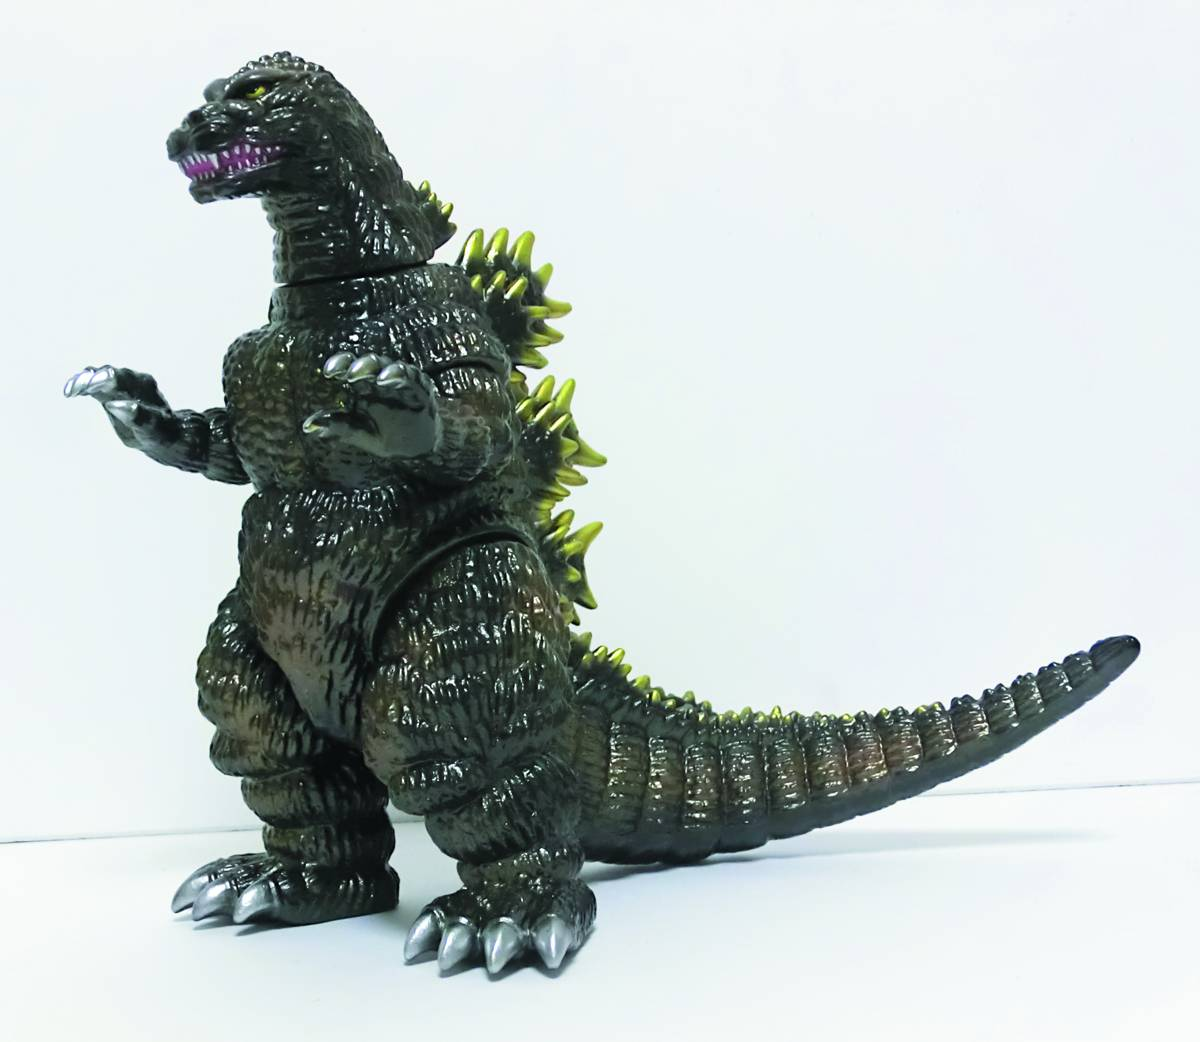 Press Release - Diamond Comics Set To Distribute Godzilla ...